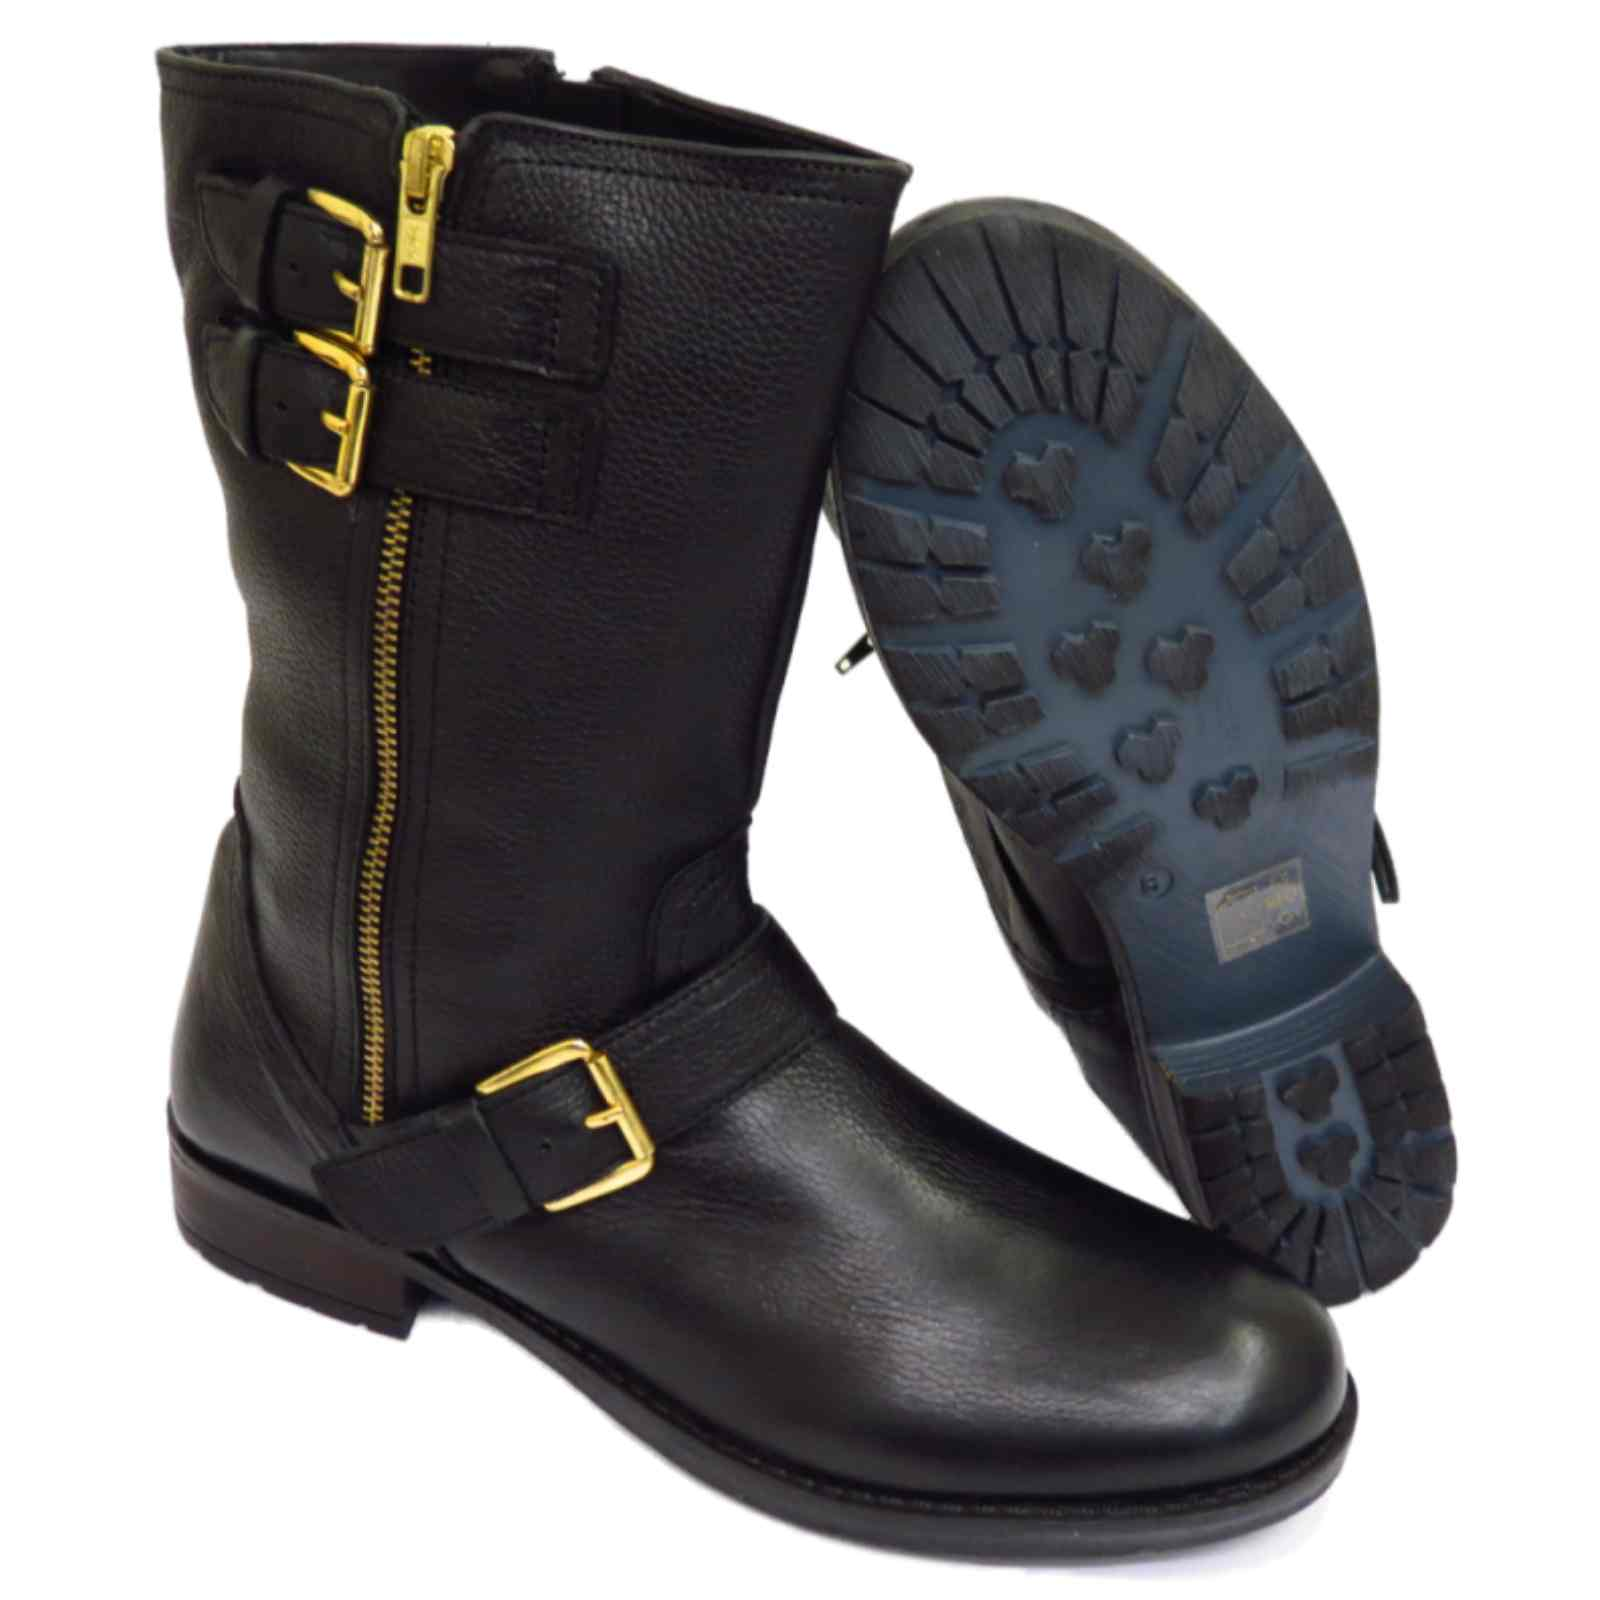 Biker boots (moto or motorcycle boots) are ones of the most wearable boots for seasons such as fall and winter. So, I'm sure, you should pay your attention to this kind of boots to create adorable and unique winter outfits.